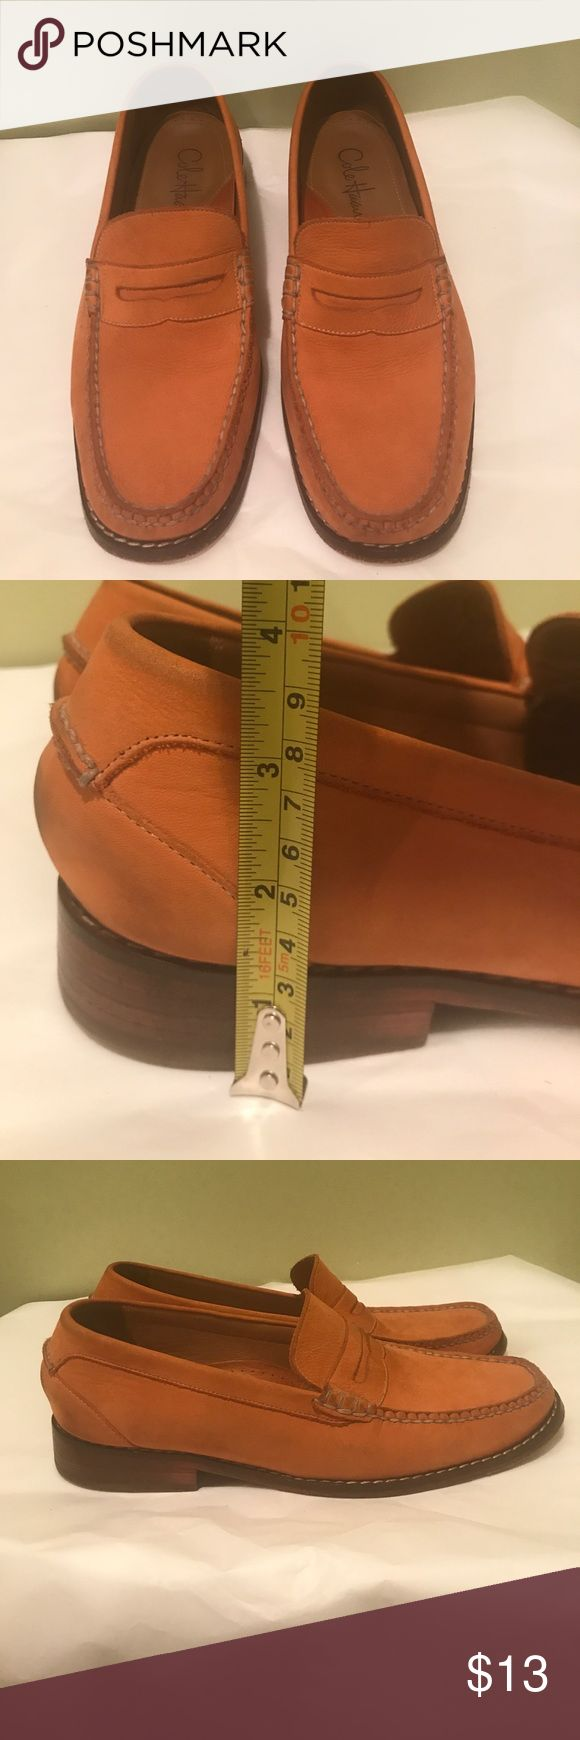 Cole Haan Men's Orange Penny Loafer. US Size 10M. Cole Haan Nike Air Men's US Size 10M orange penny loafer. Soft leather. Some wear on heel and inside ball, shown in pictures. Heel and shoe height shown in pictures. Price is firm. Cole Haan Shoes Loafers & Slip-Ons